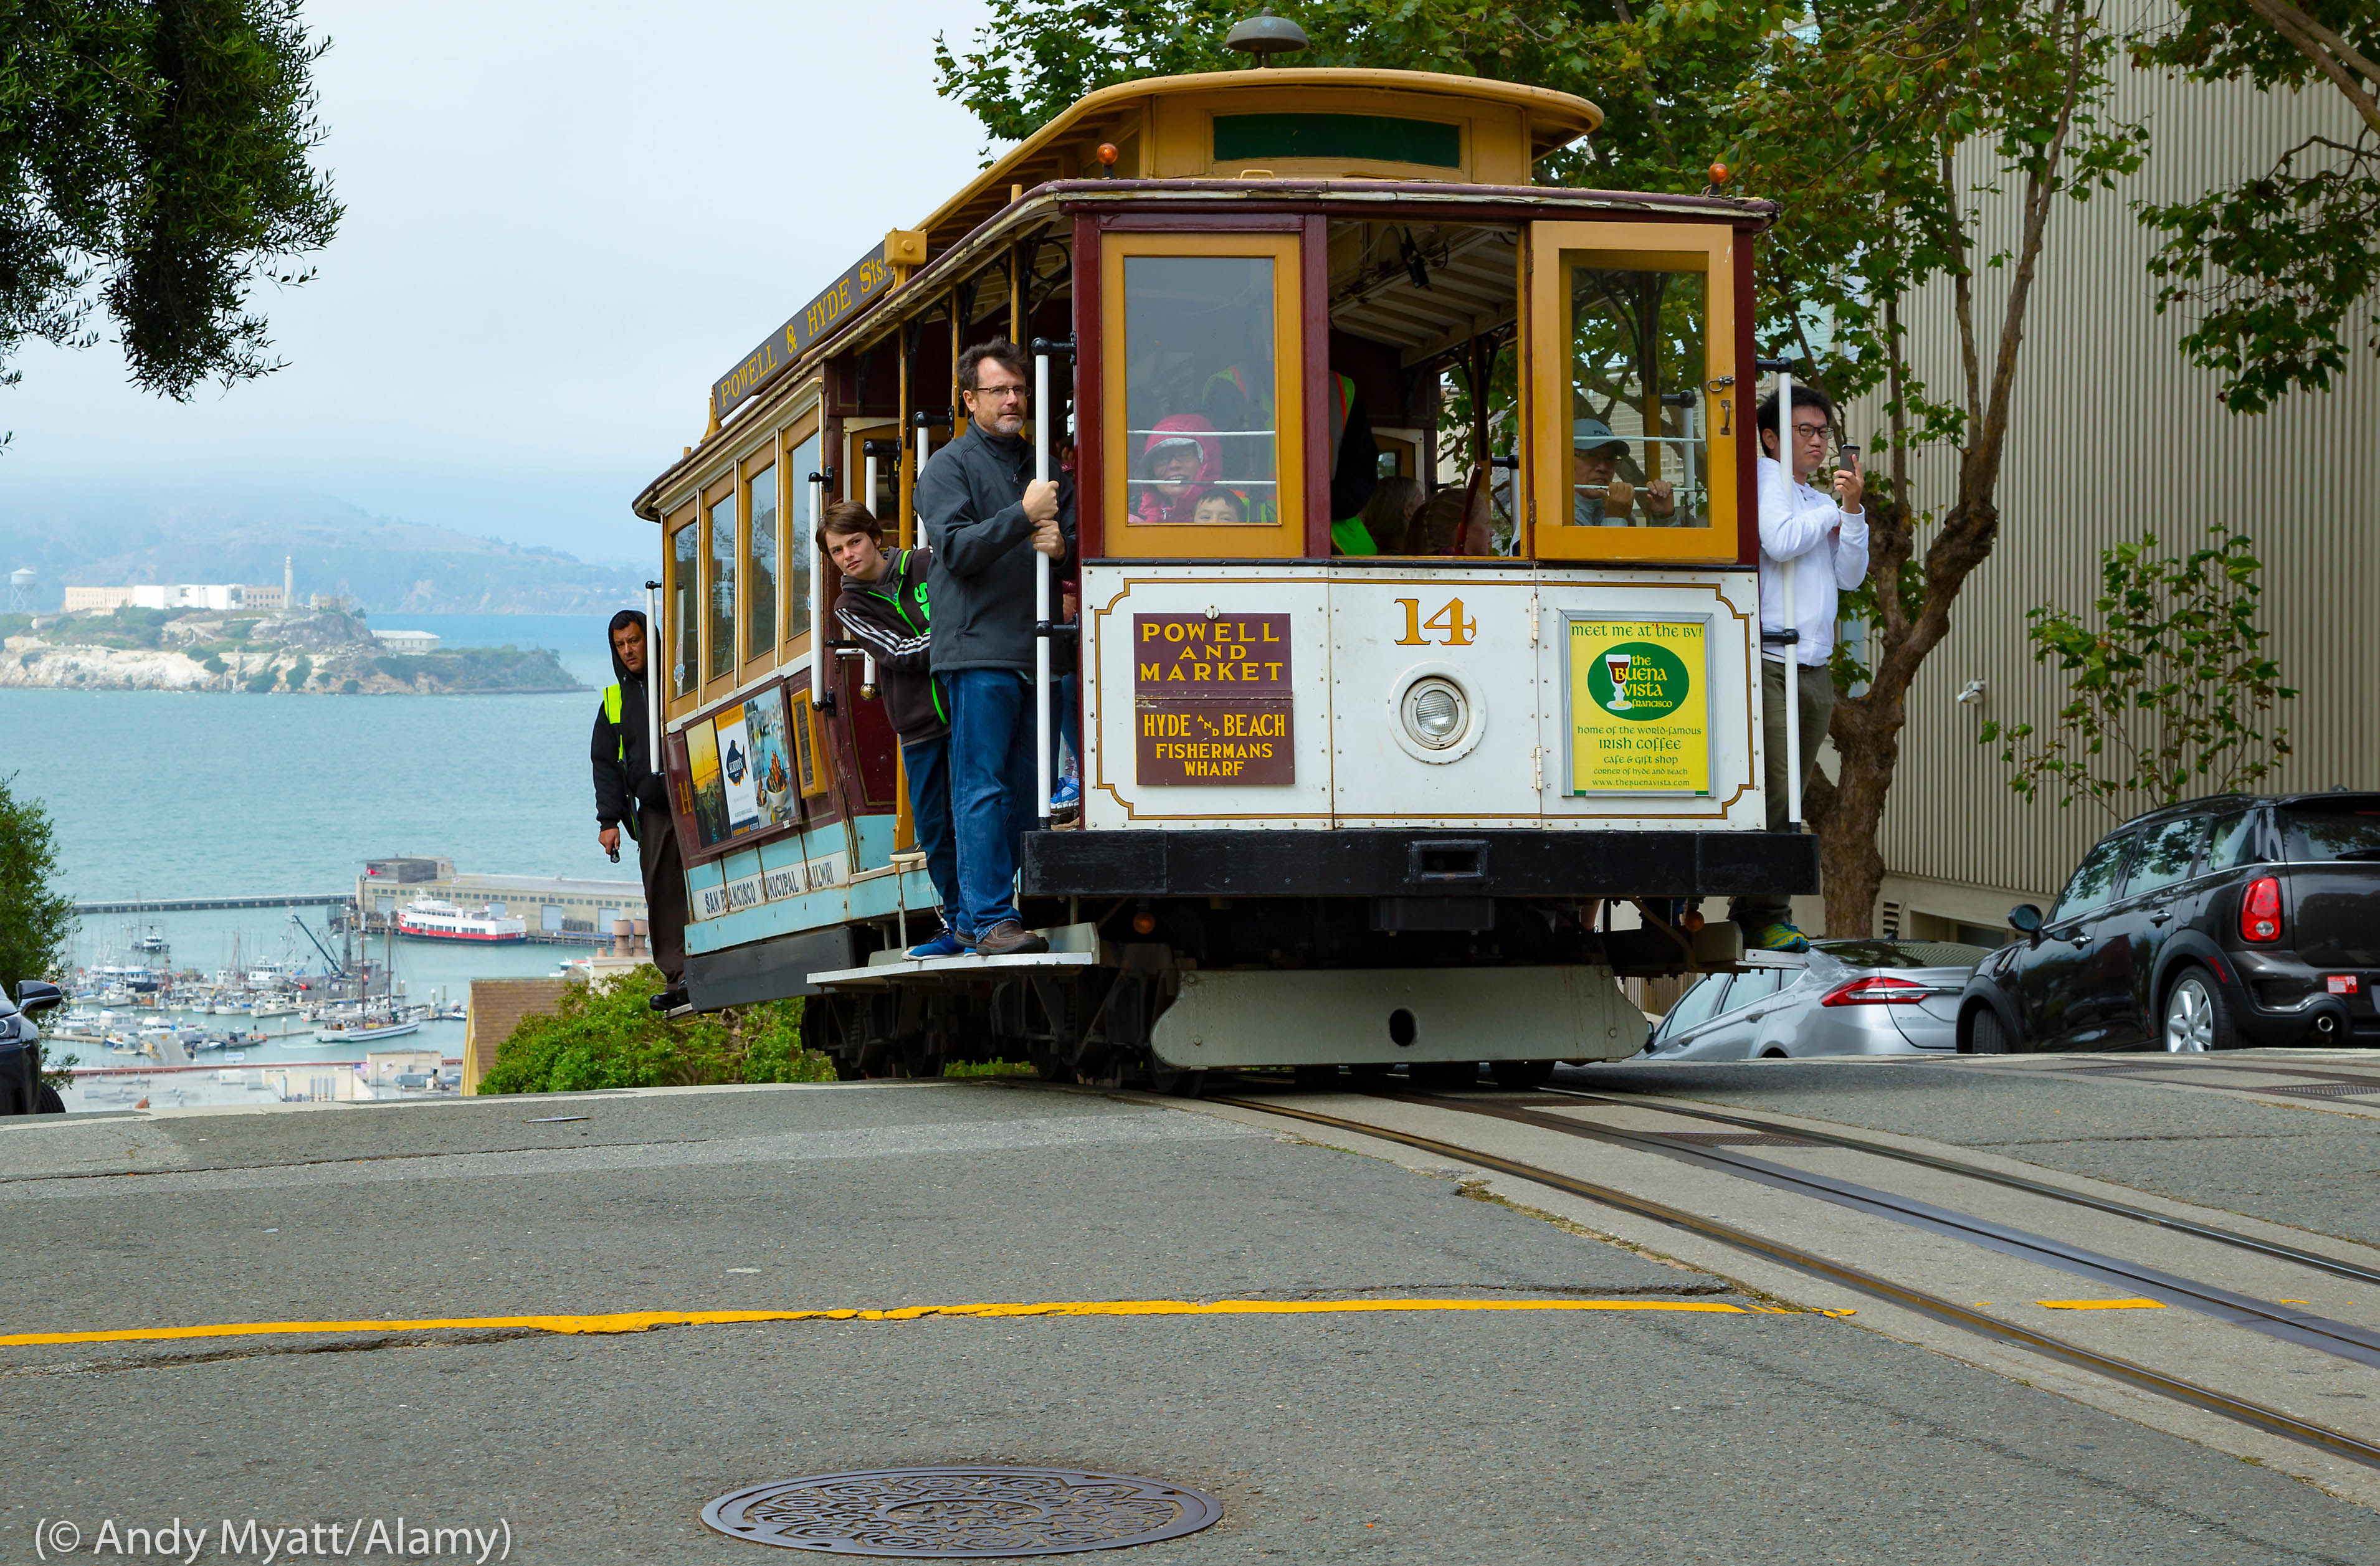 People riding a cable car (© Andy Myatt/Alamy)